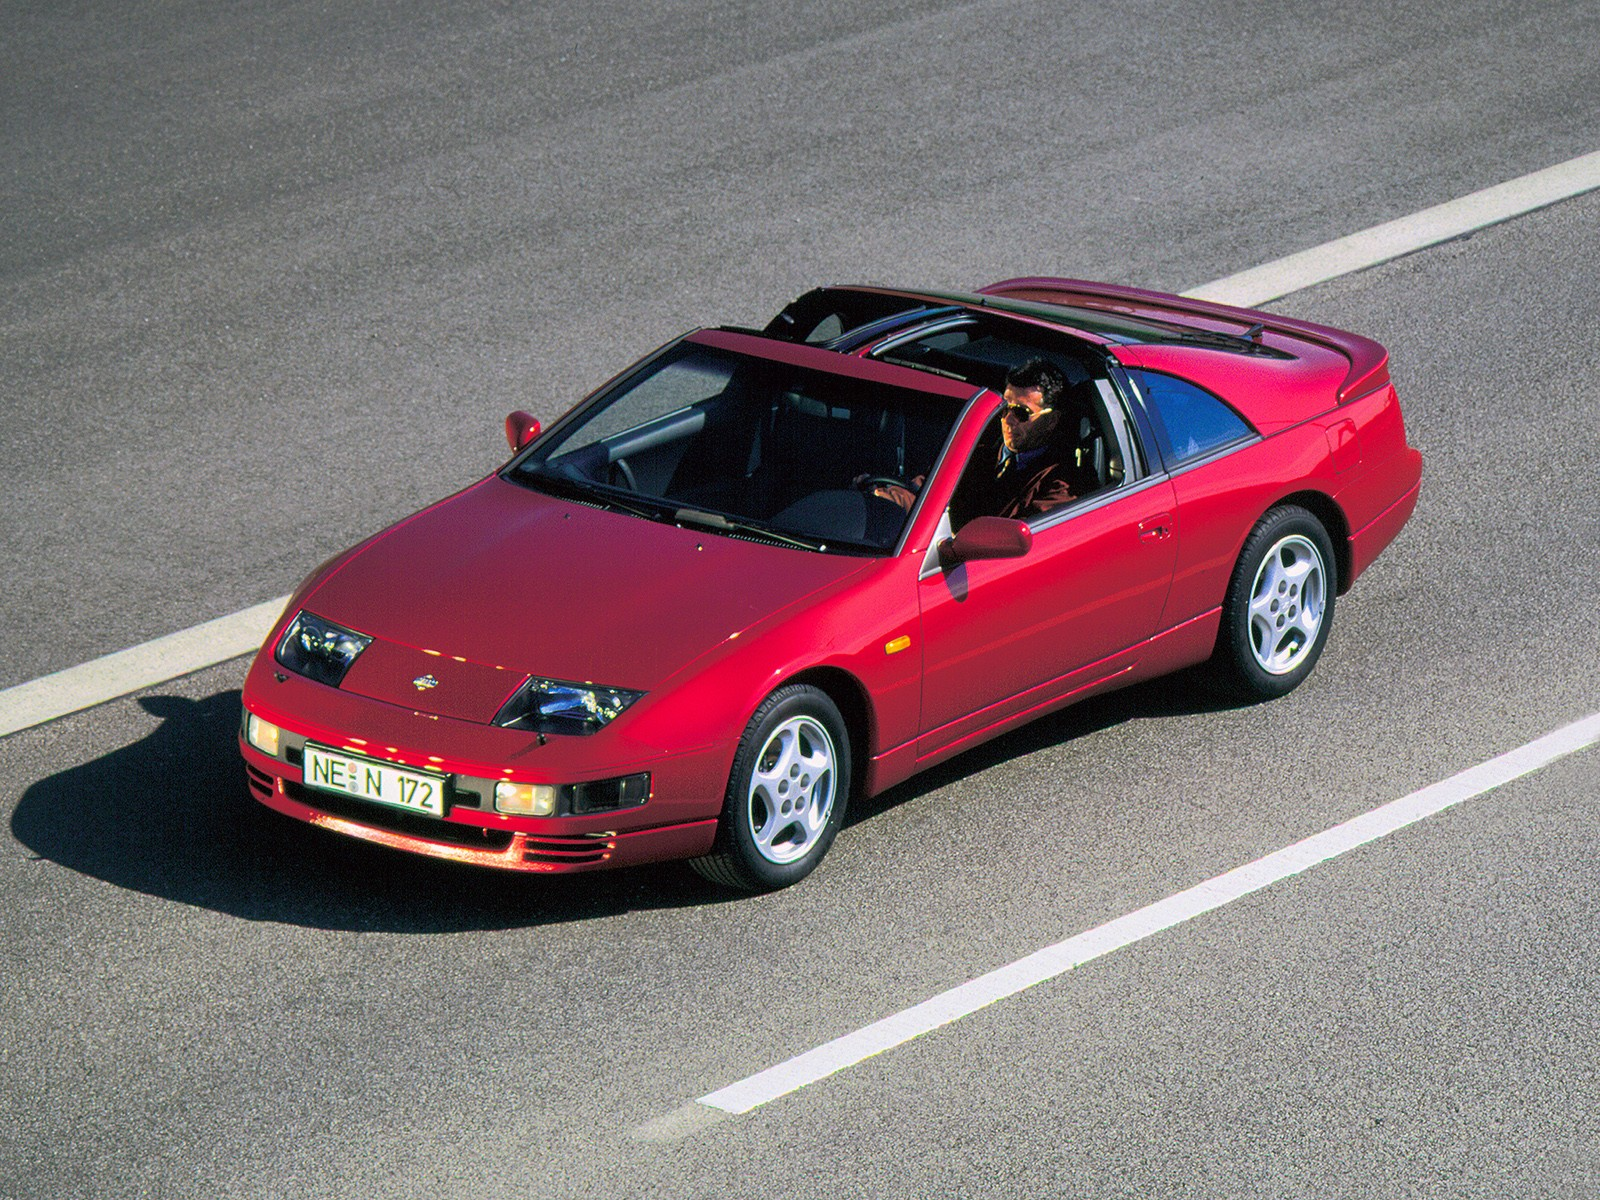 nissan 300zx coupe z32 3 0 twin turbo mt 286 hp pictures 1 photo. Black Bedroom Furniture Sets. Home Design Ideas